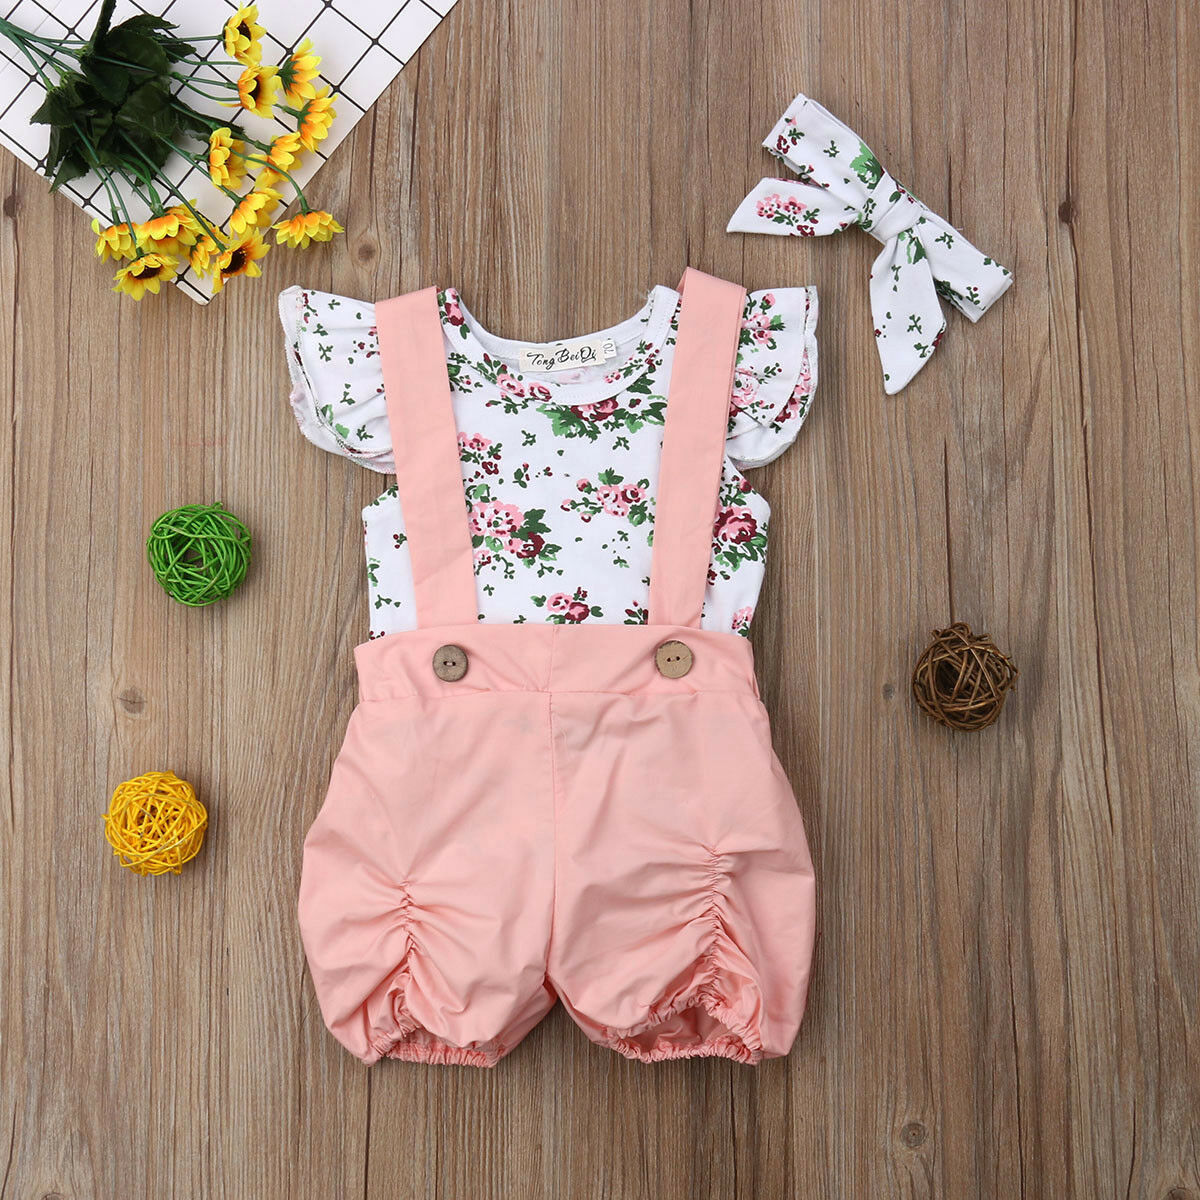 Summer Casual Newborn Kids Infant Baby Girl Foral Ruffled Romper Sleeveless Floral Jumpsuit Outfit Clothes